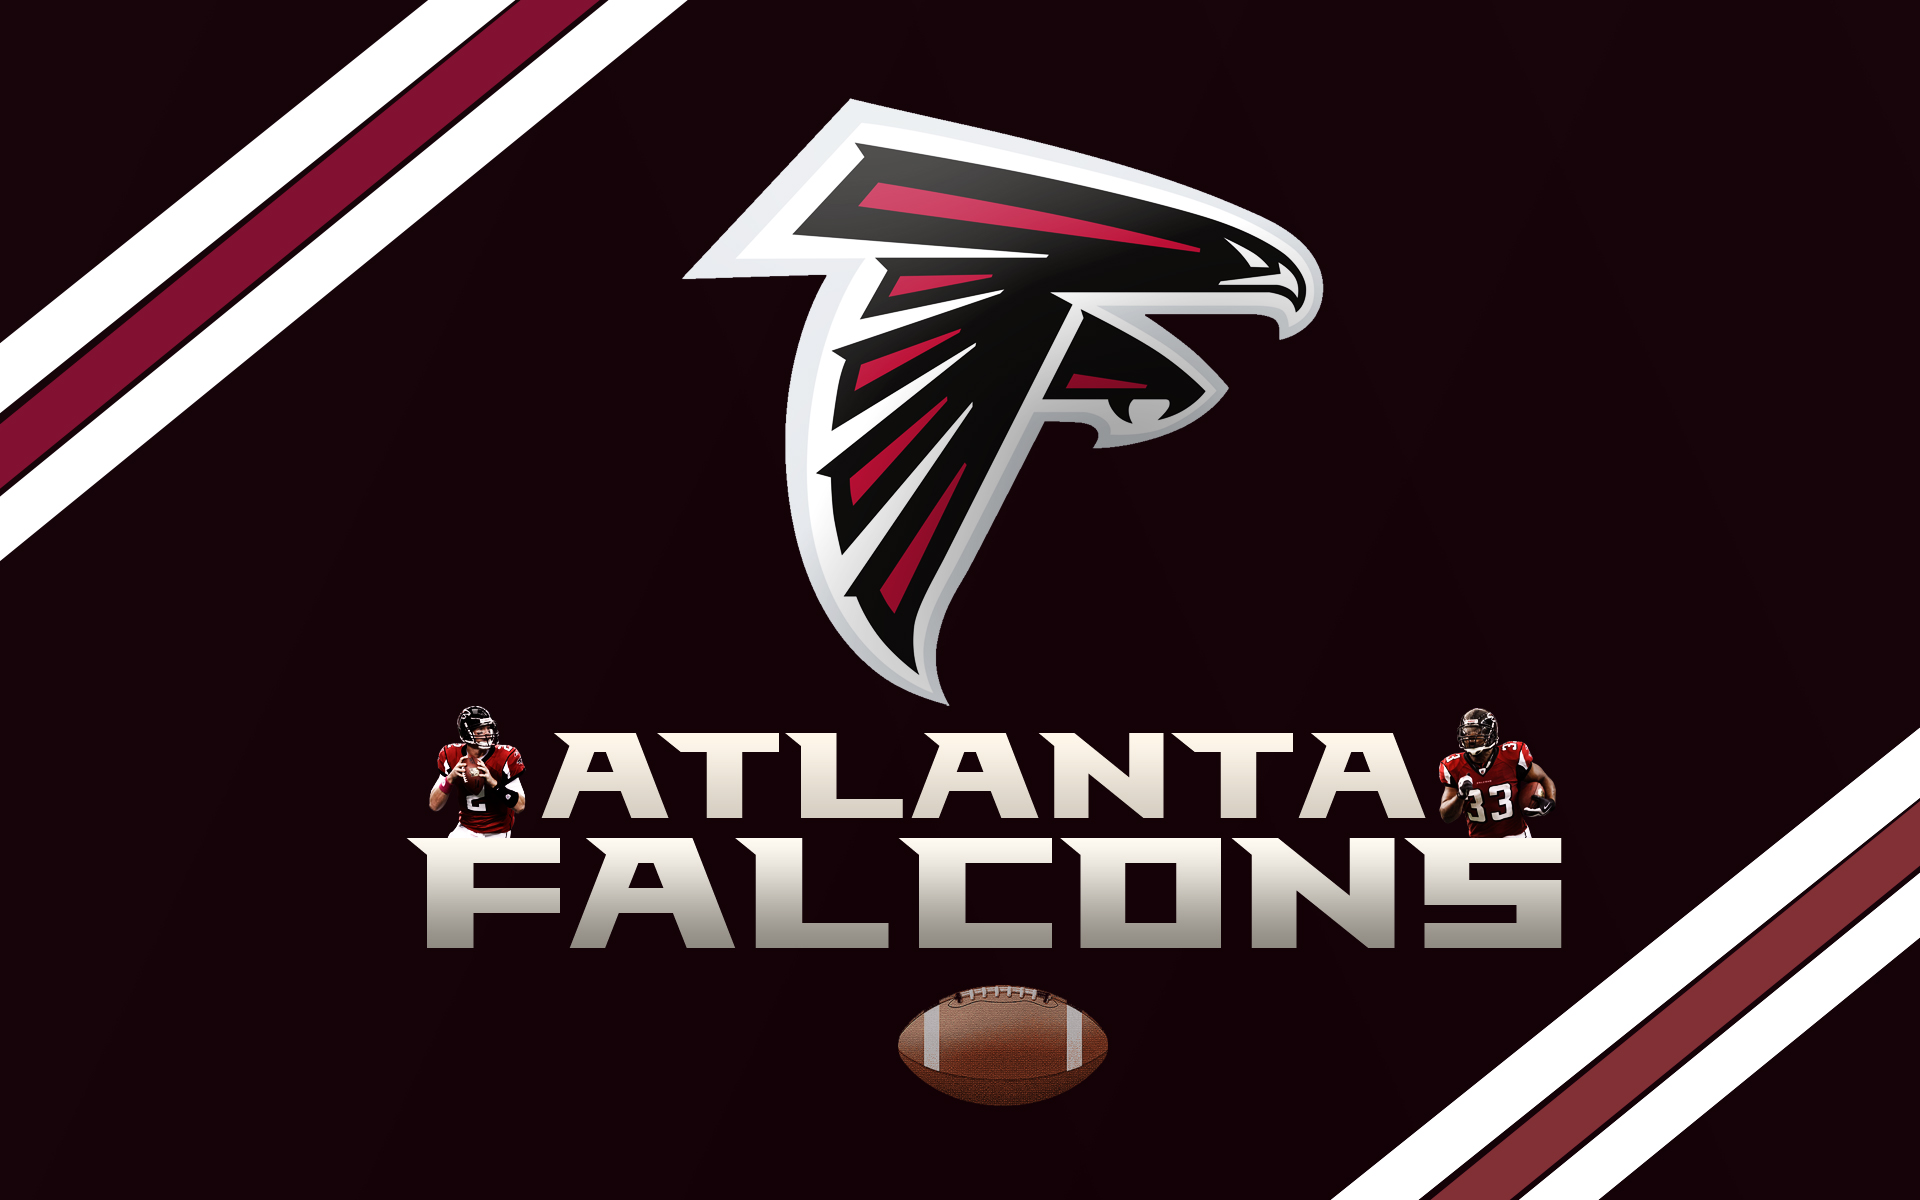 Atlanta Falcons Logo Photos Nfl Iphone Wallpapers: 8 HD Atlanta Falcons Wallpapers